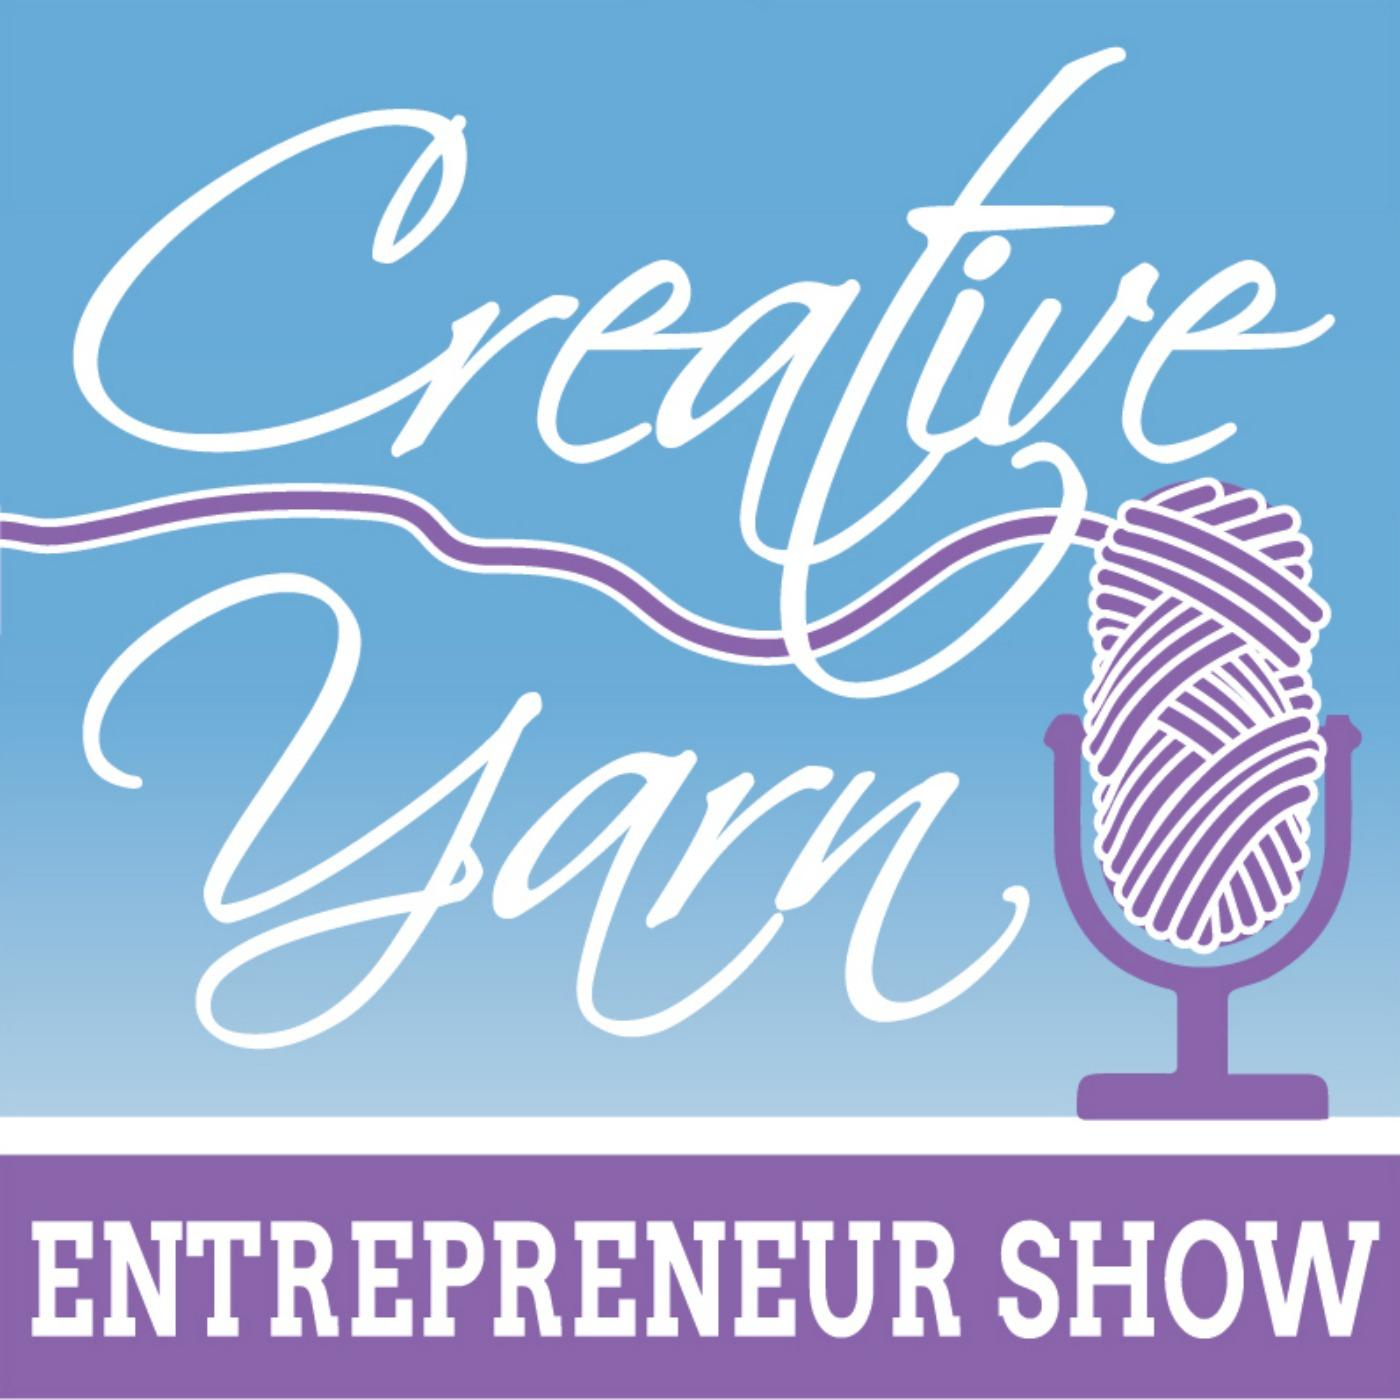 Episode 64: Work with Red Heart as a Professional Crafter: An Interview with Carrie Leahew